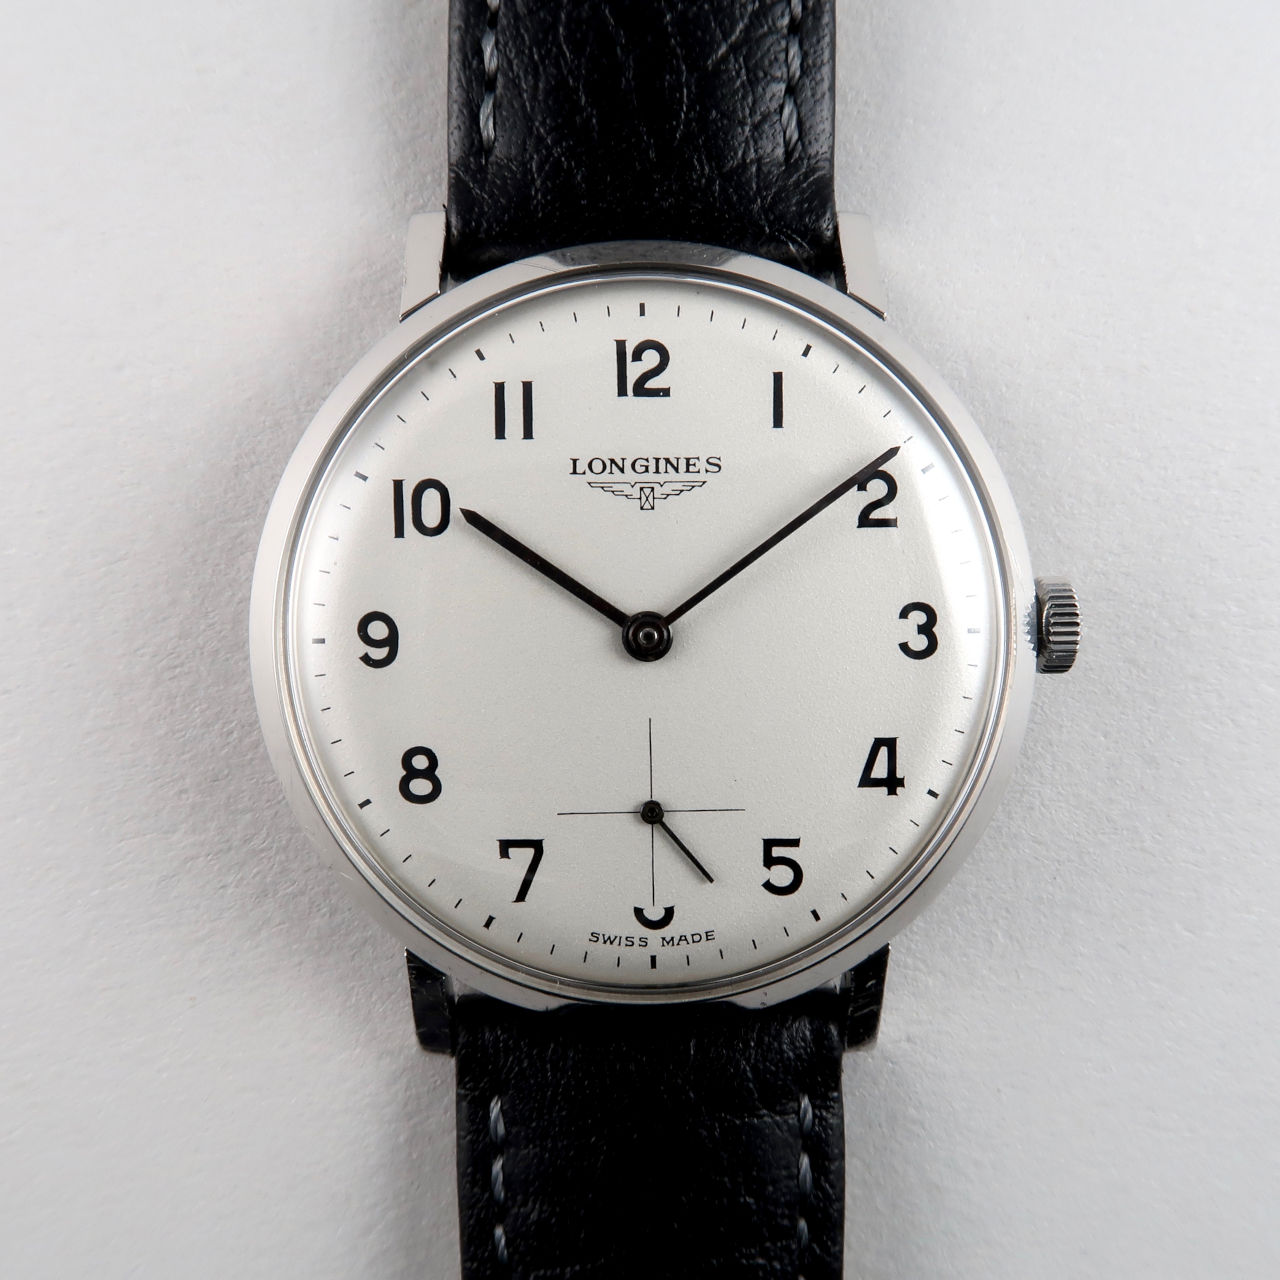 Longines Ref. 7855 -1 invoiced 1968 | steel manual vintage wristwatch